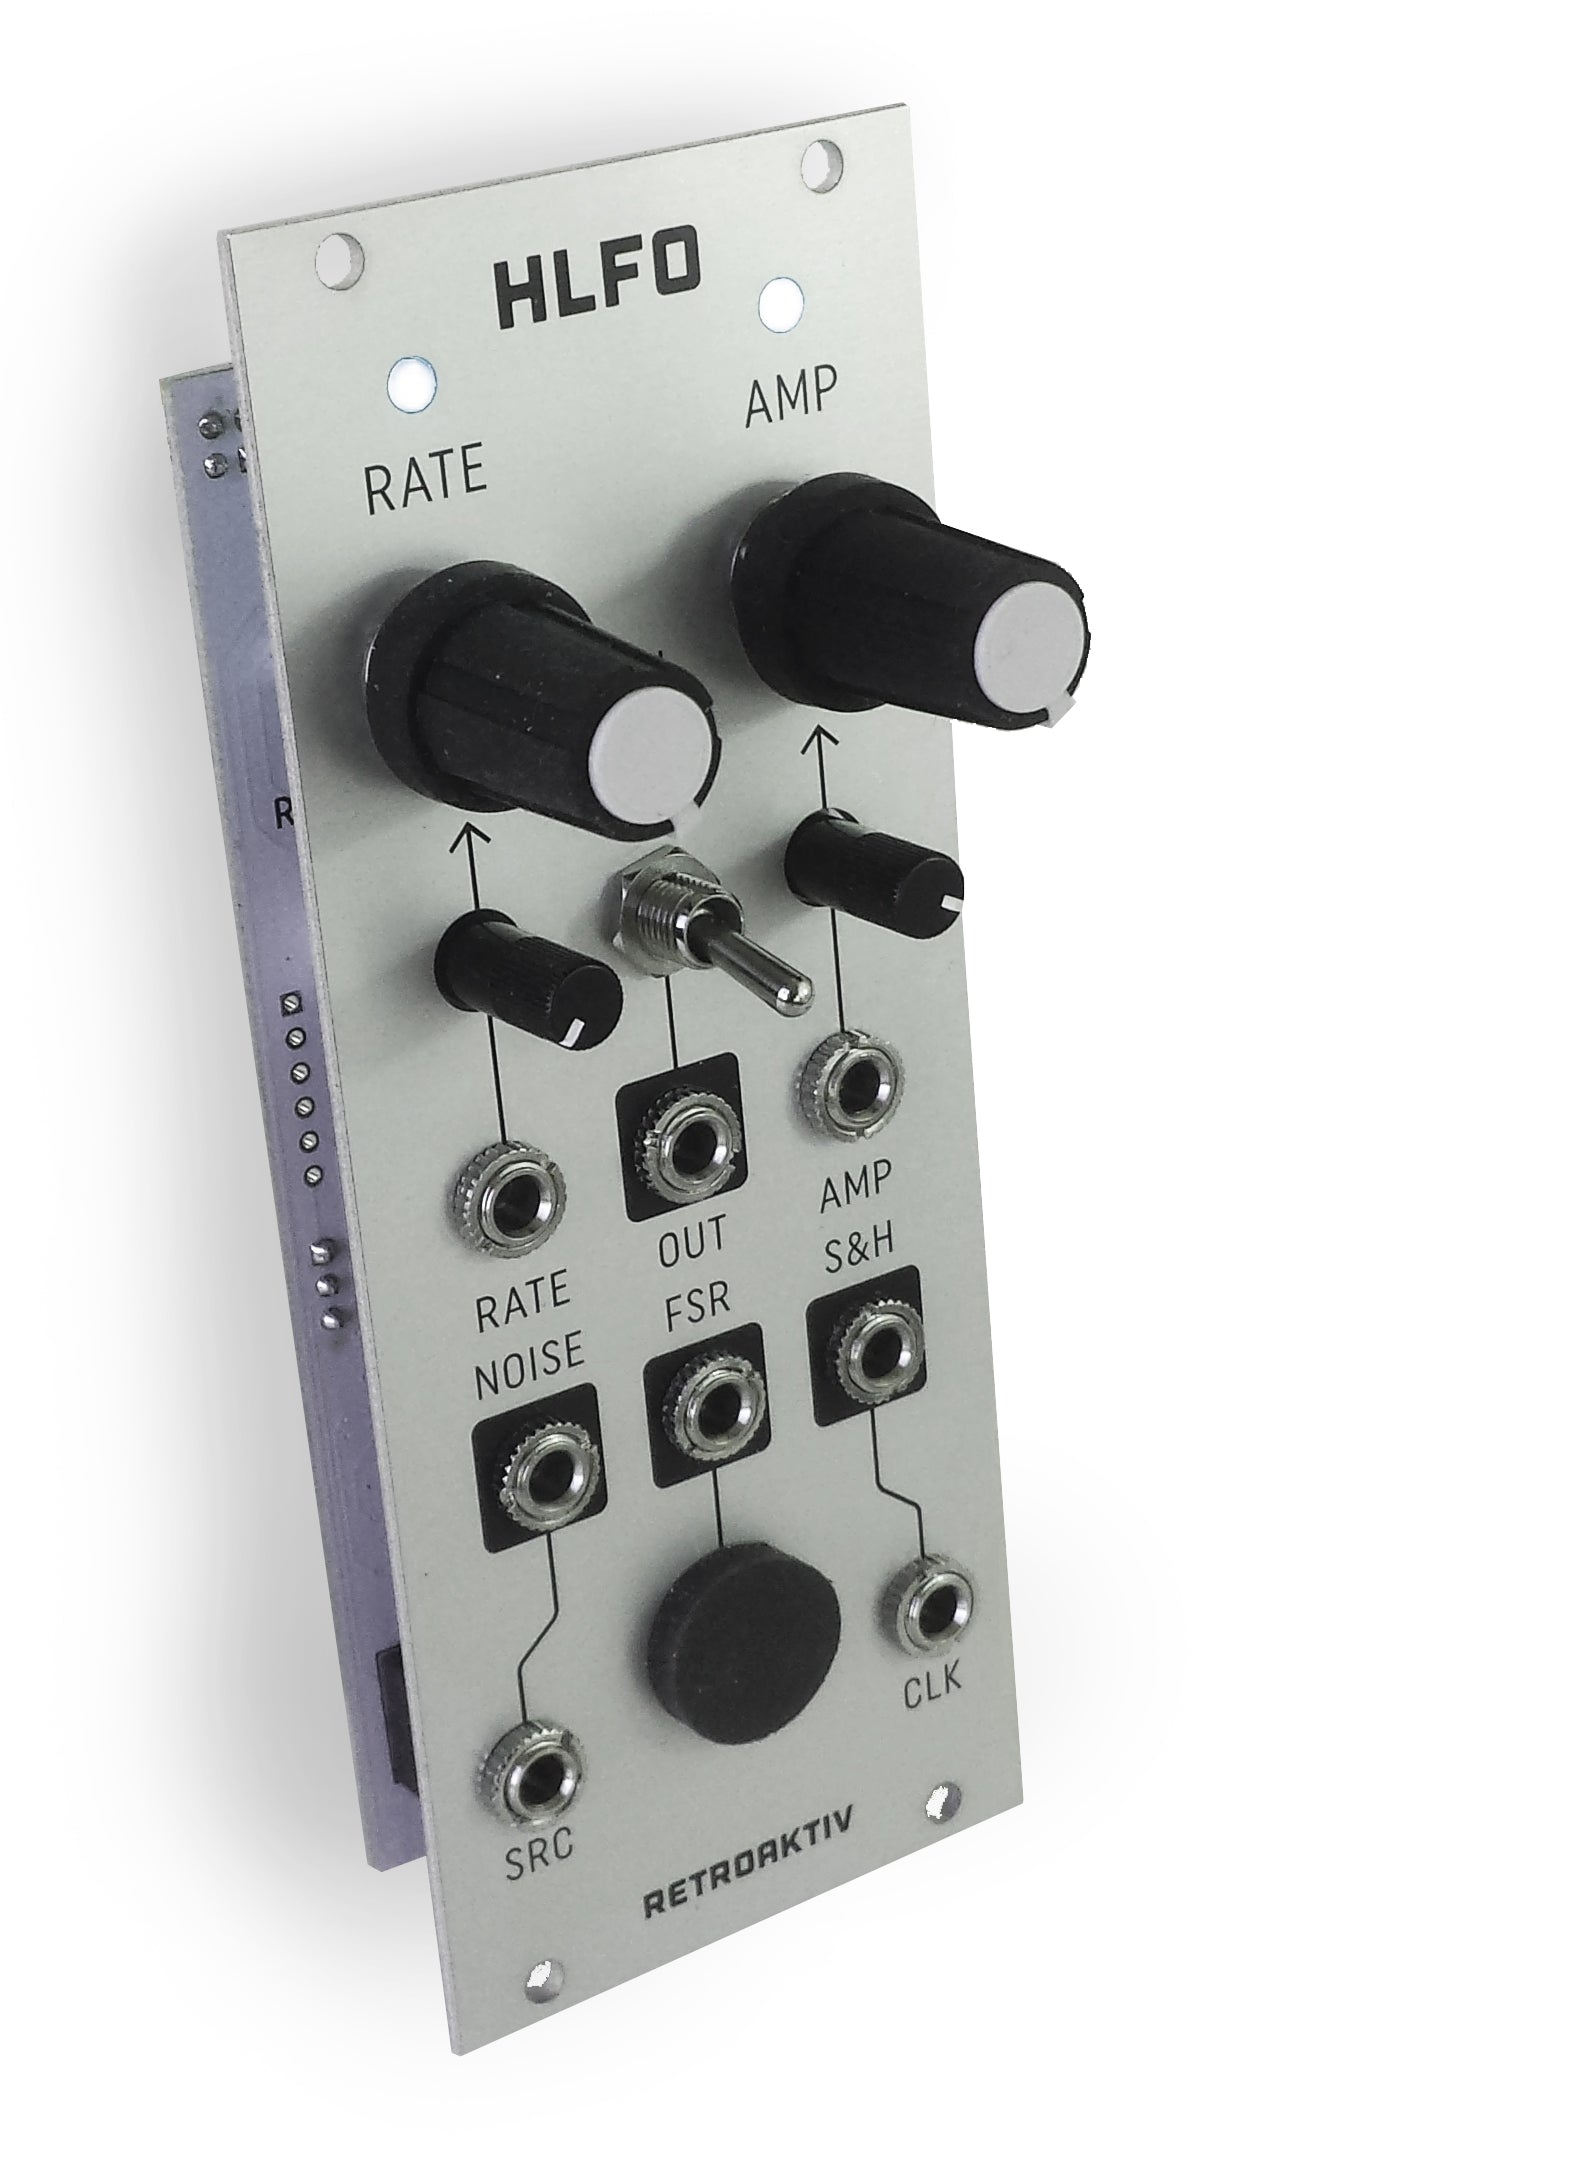 HLFO - Utility Modulation Source for Eurorack - DIY Kit